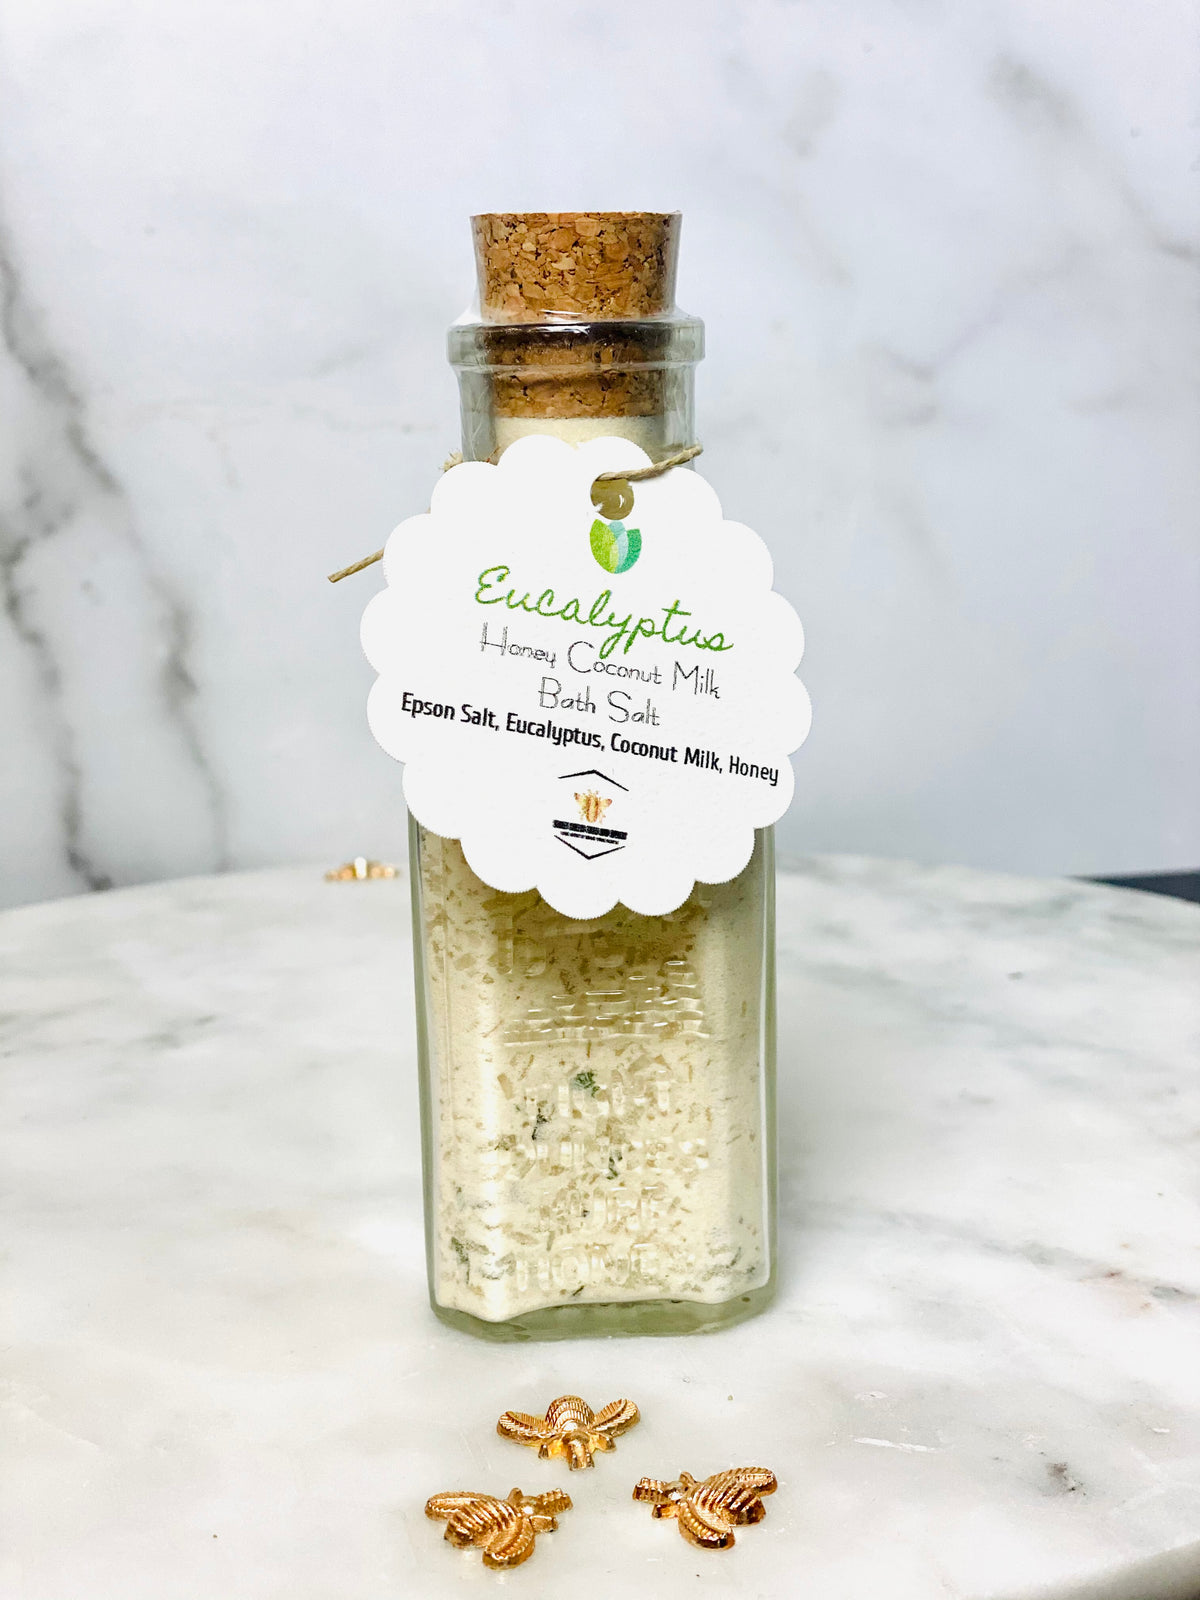 Eucalyptus Honey Coconut Milk Bath Salts (8 oz)